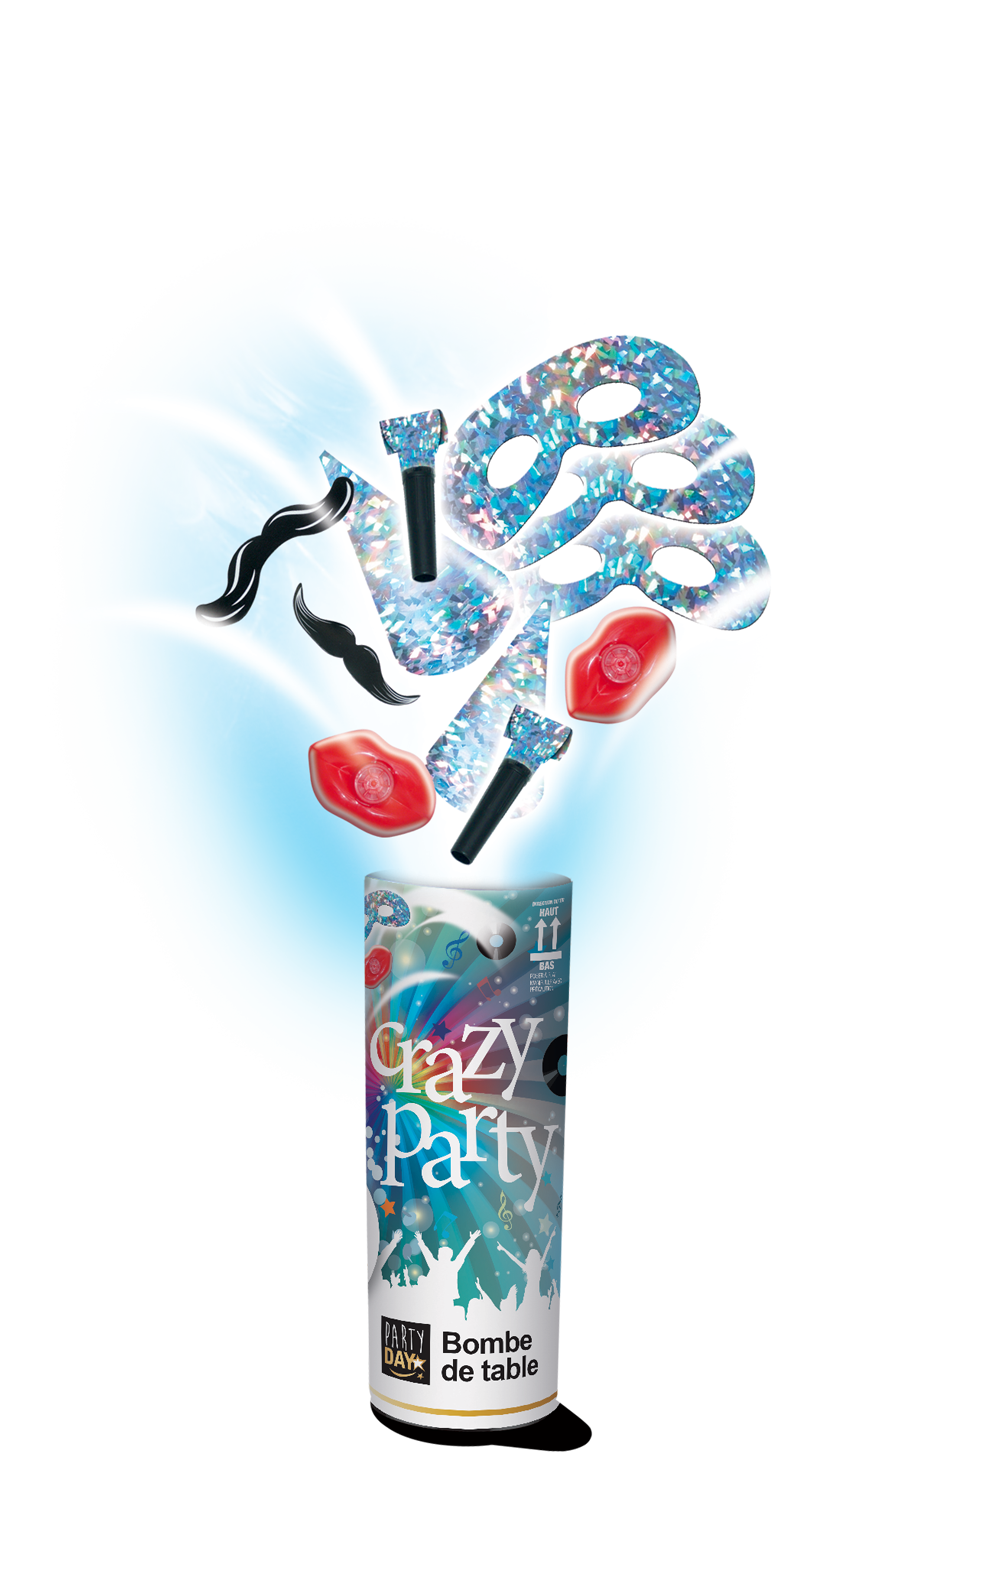 P154143-BT-CRAZY-PARTY-2018-3D-produits